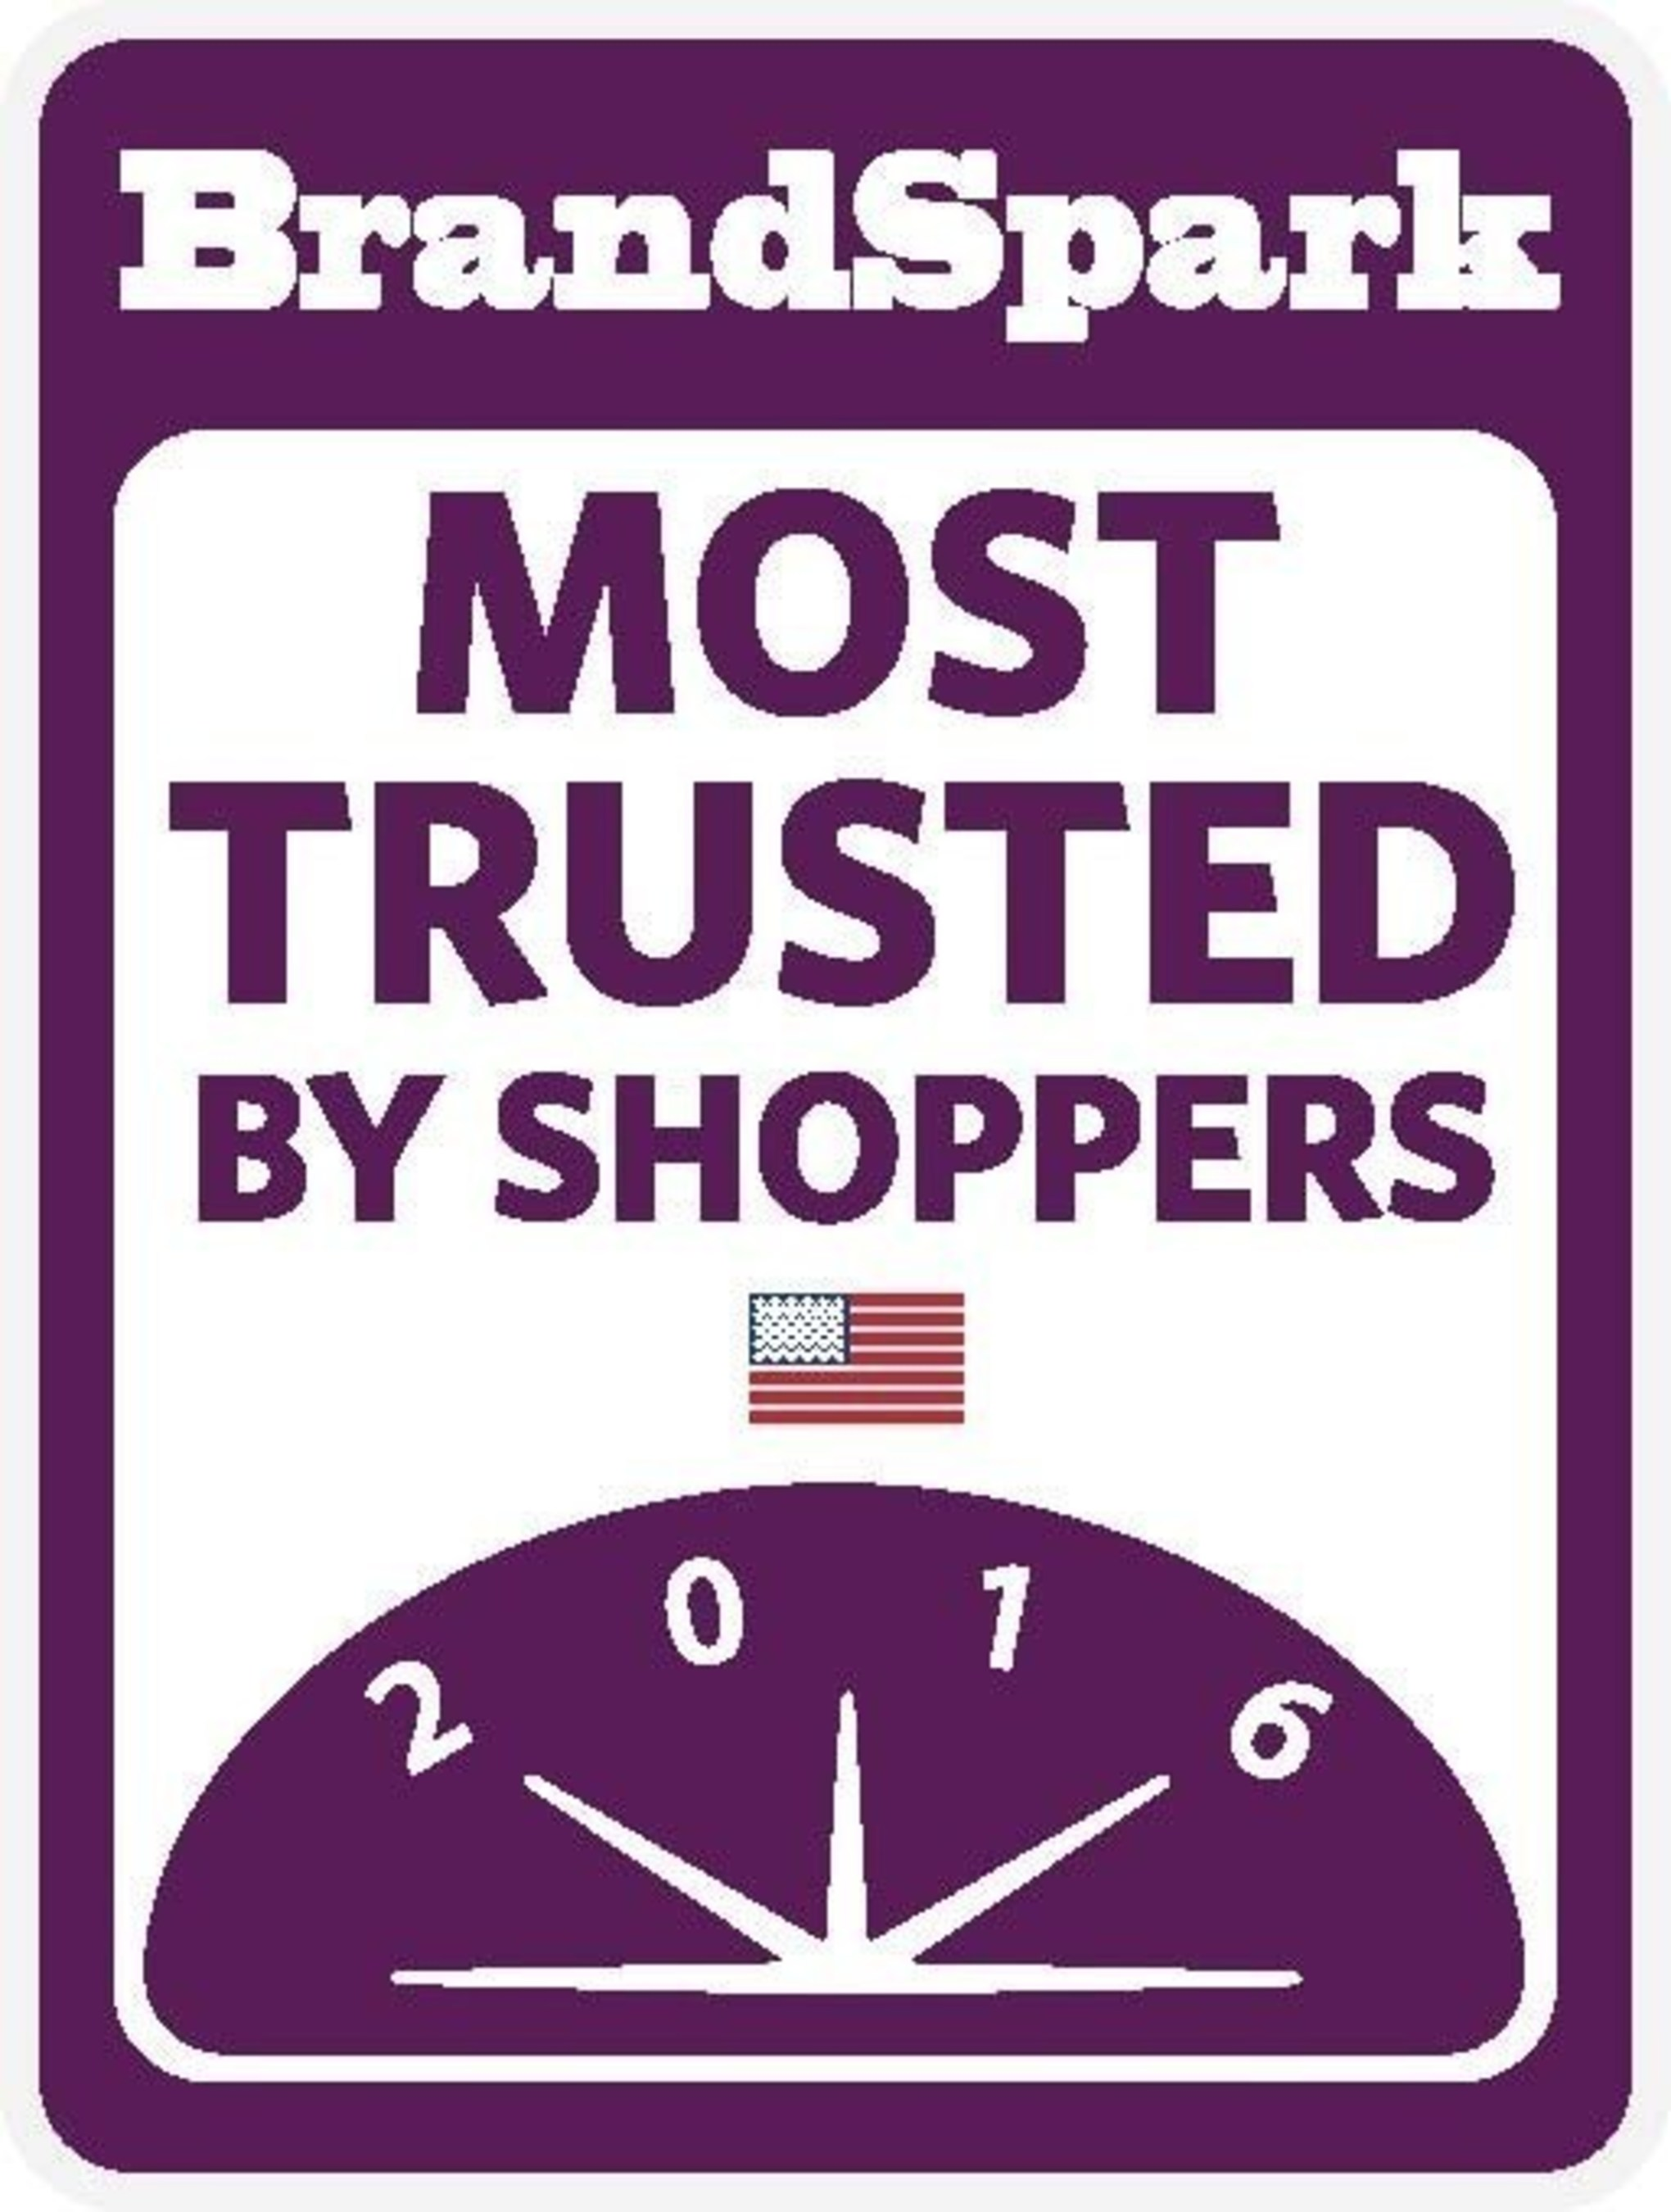 BrandSpark Most Trusted By Shoppers logo